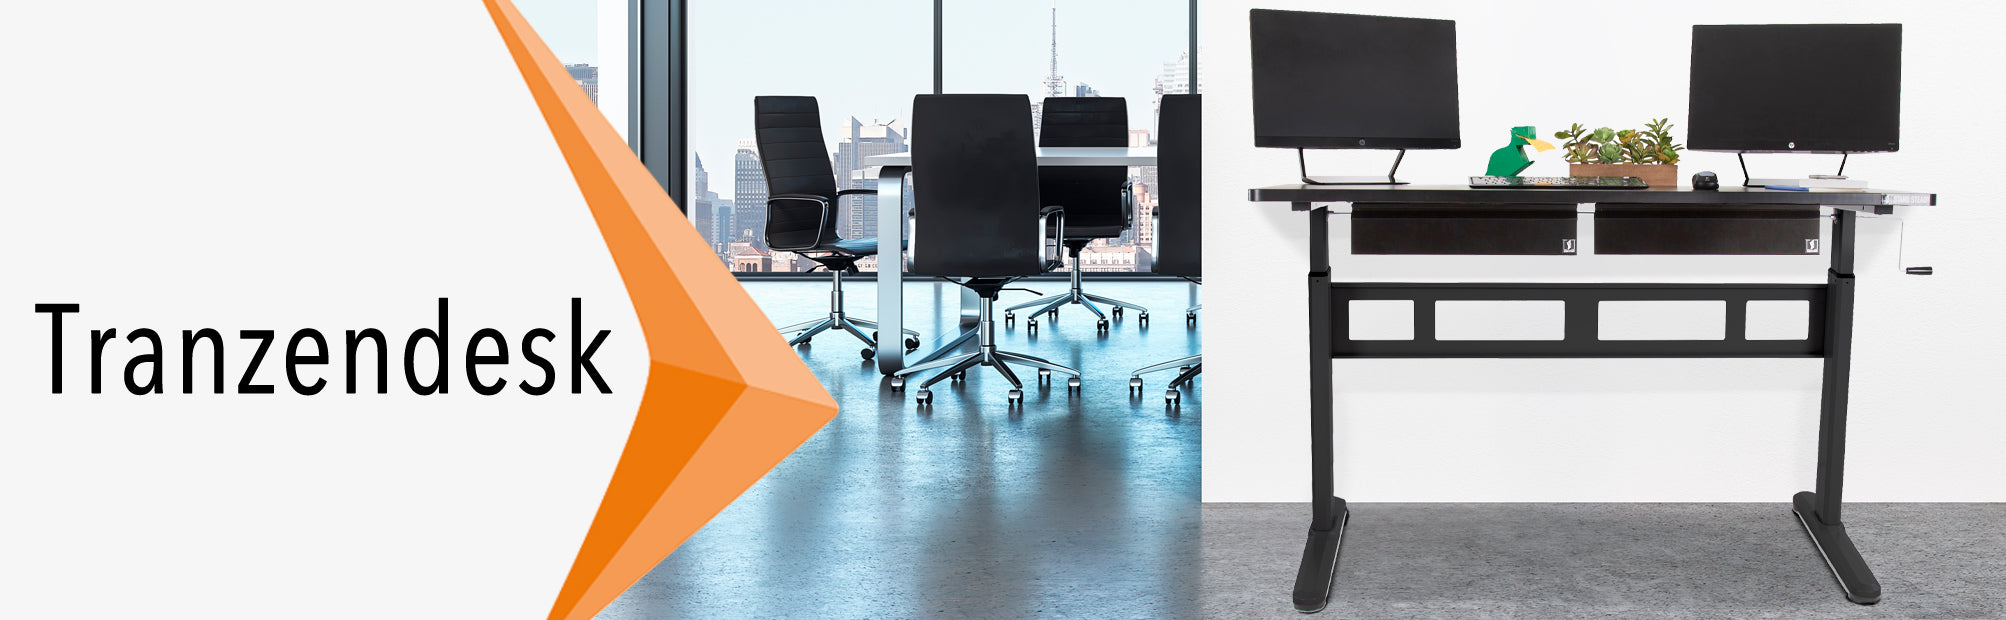 Stand Steady Tranzendesk 55 Inch Standing Desk with Two Under Desk Drawers